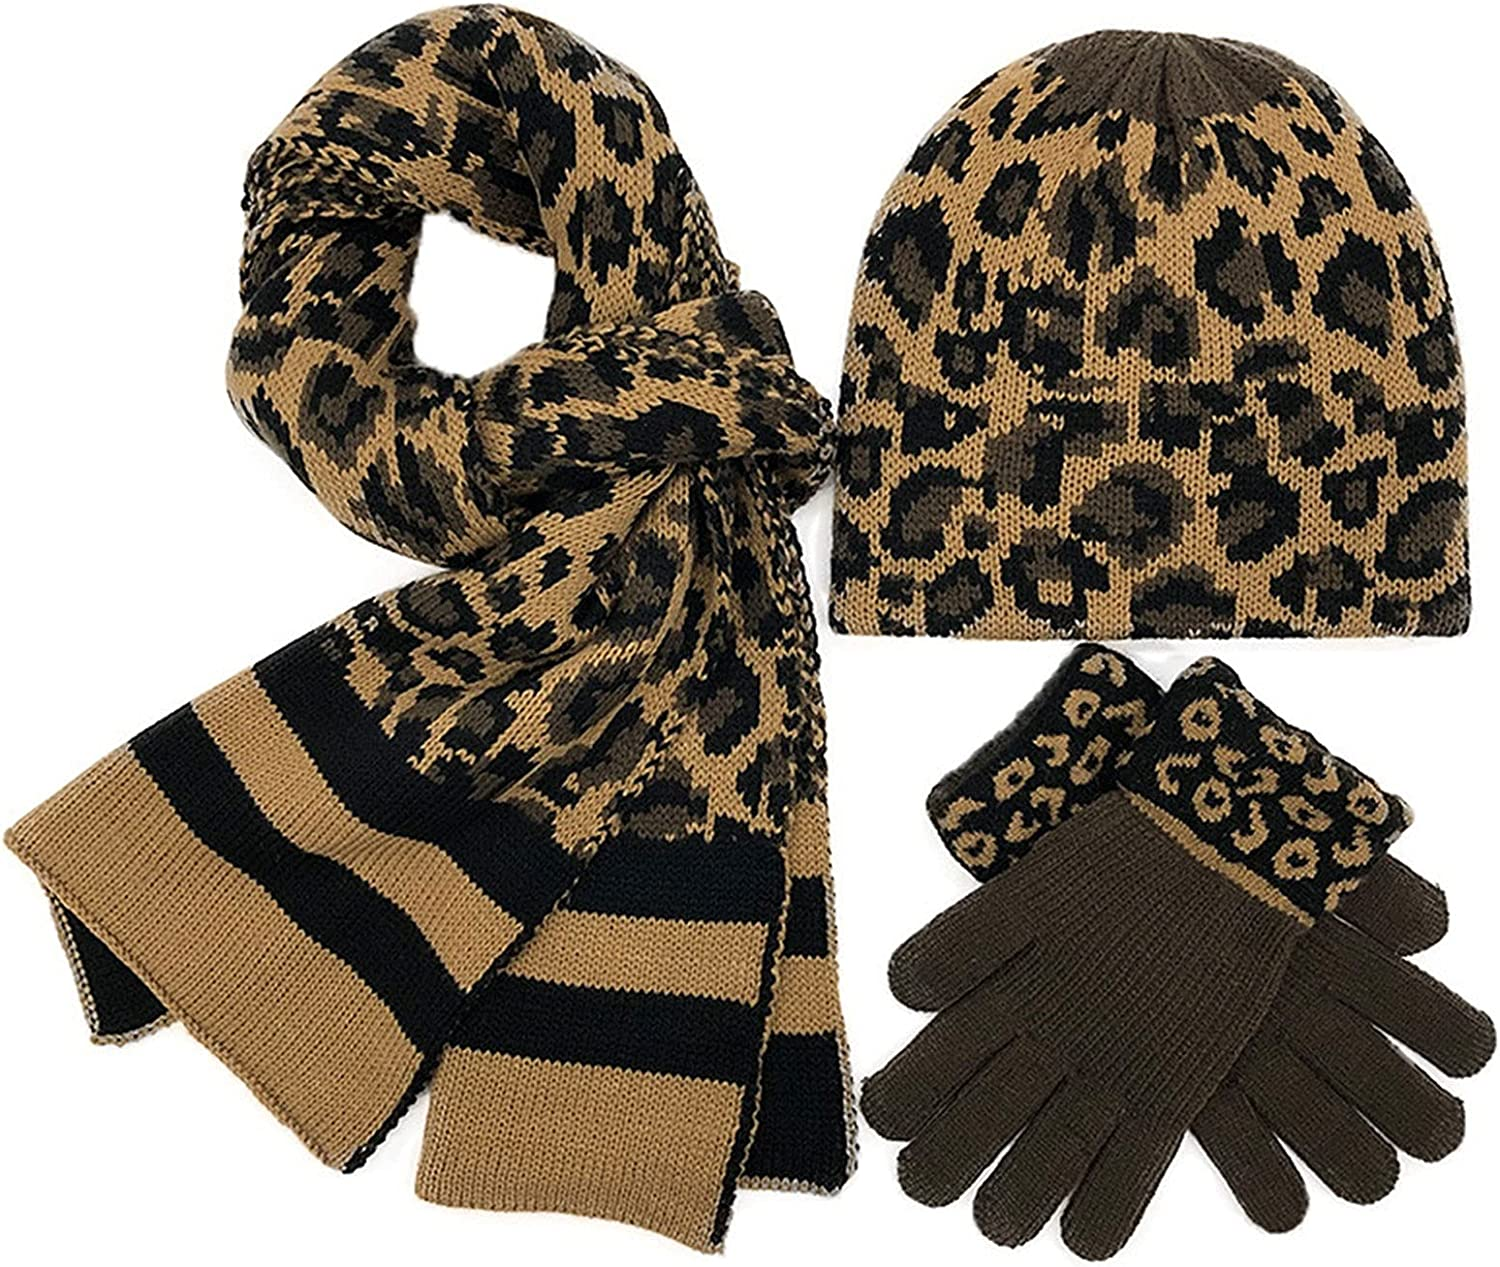 Winter Knit 2021 new Hat Gloves Scarf Knitted Pieces Set Fees free!! 3 Le